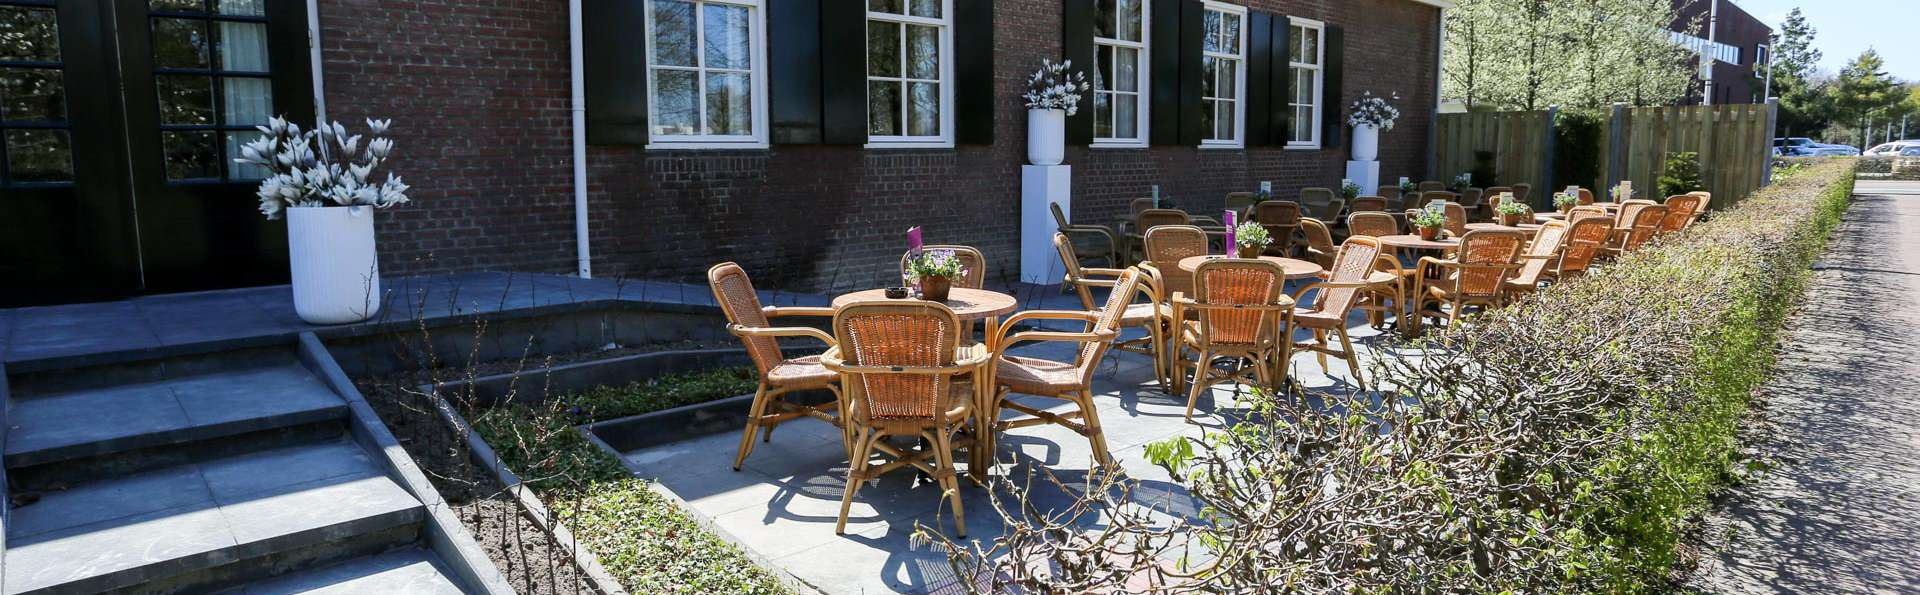 Hotel De Postelse Hoeve - EDIT_TERRACE_03.jpg